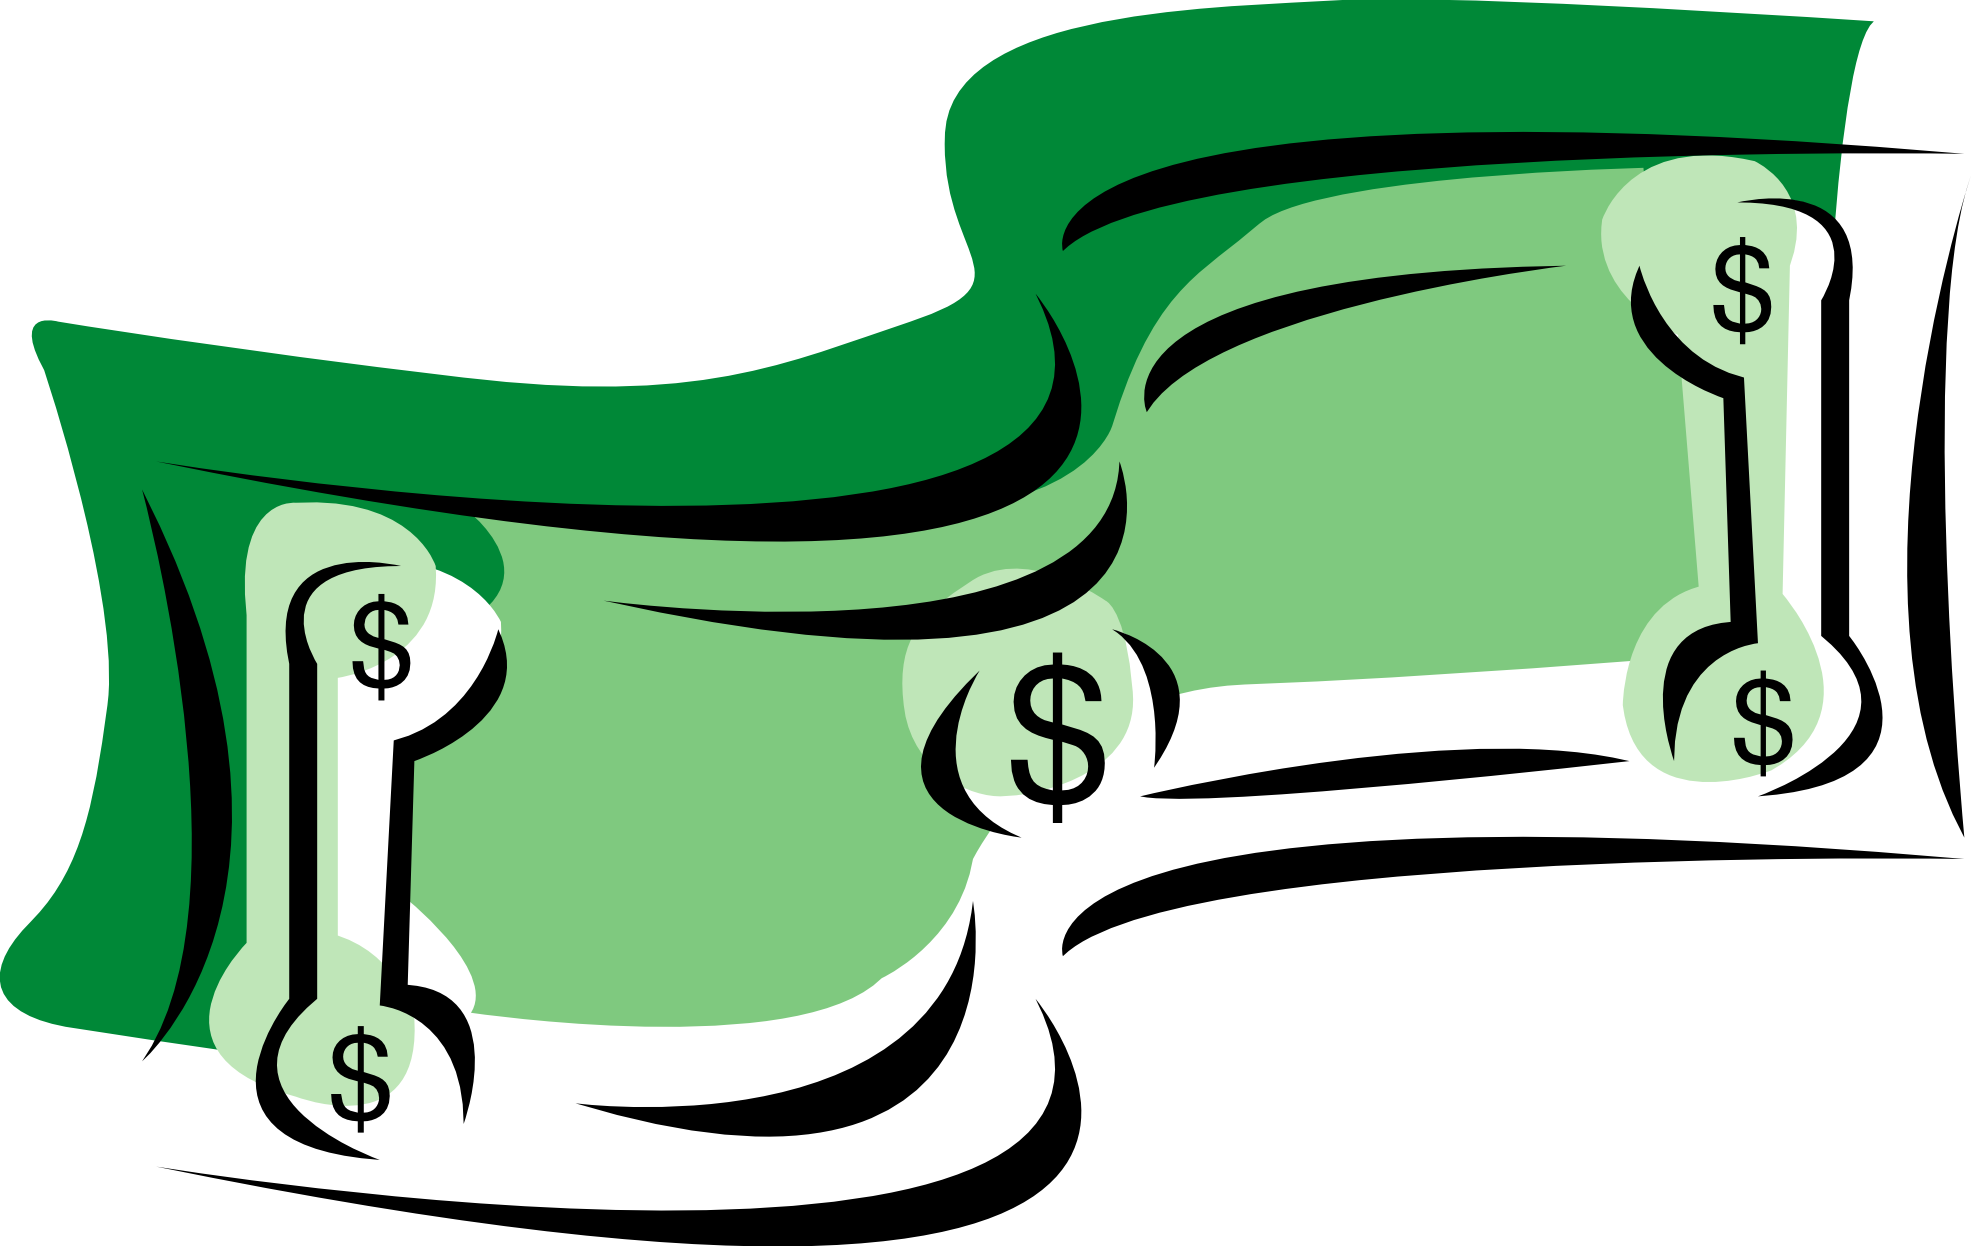 Money clipart #4, Download drawings